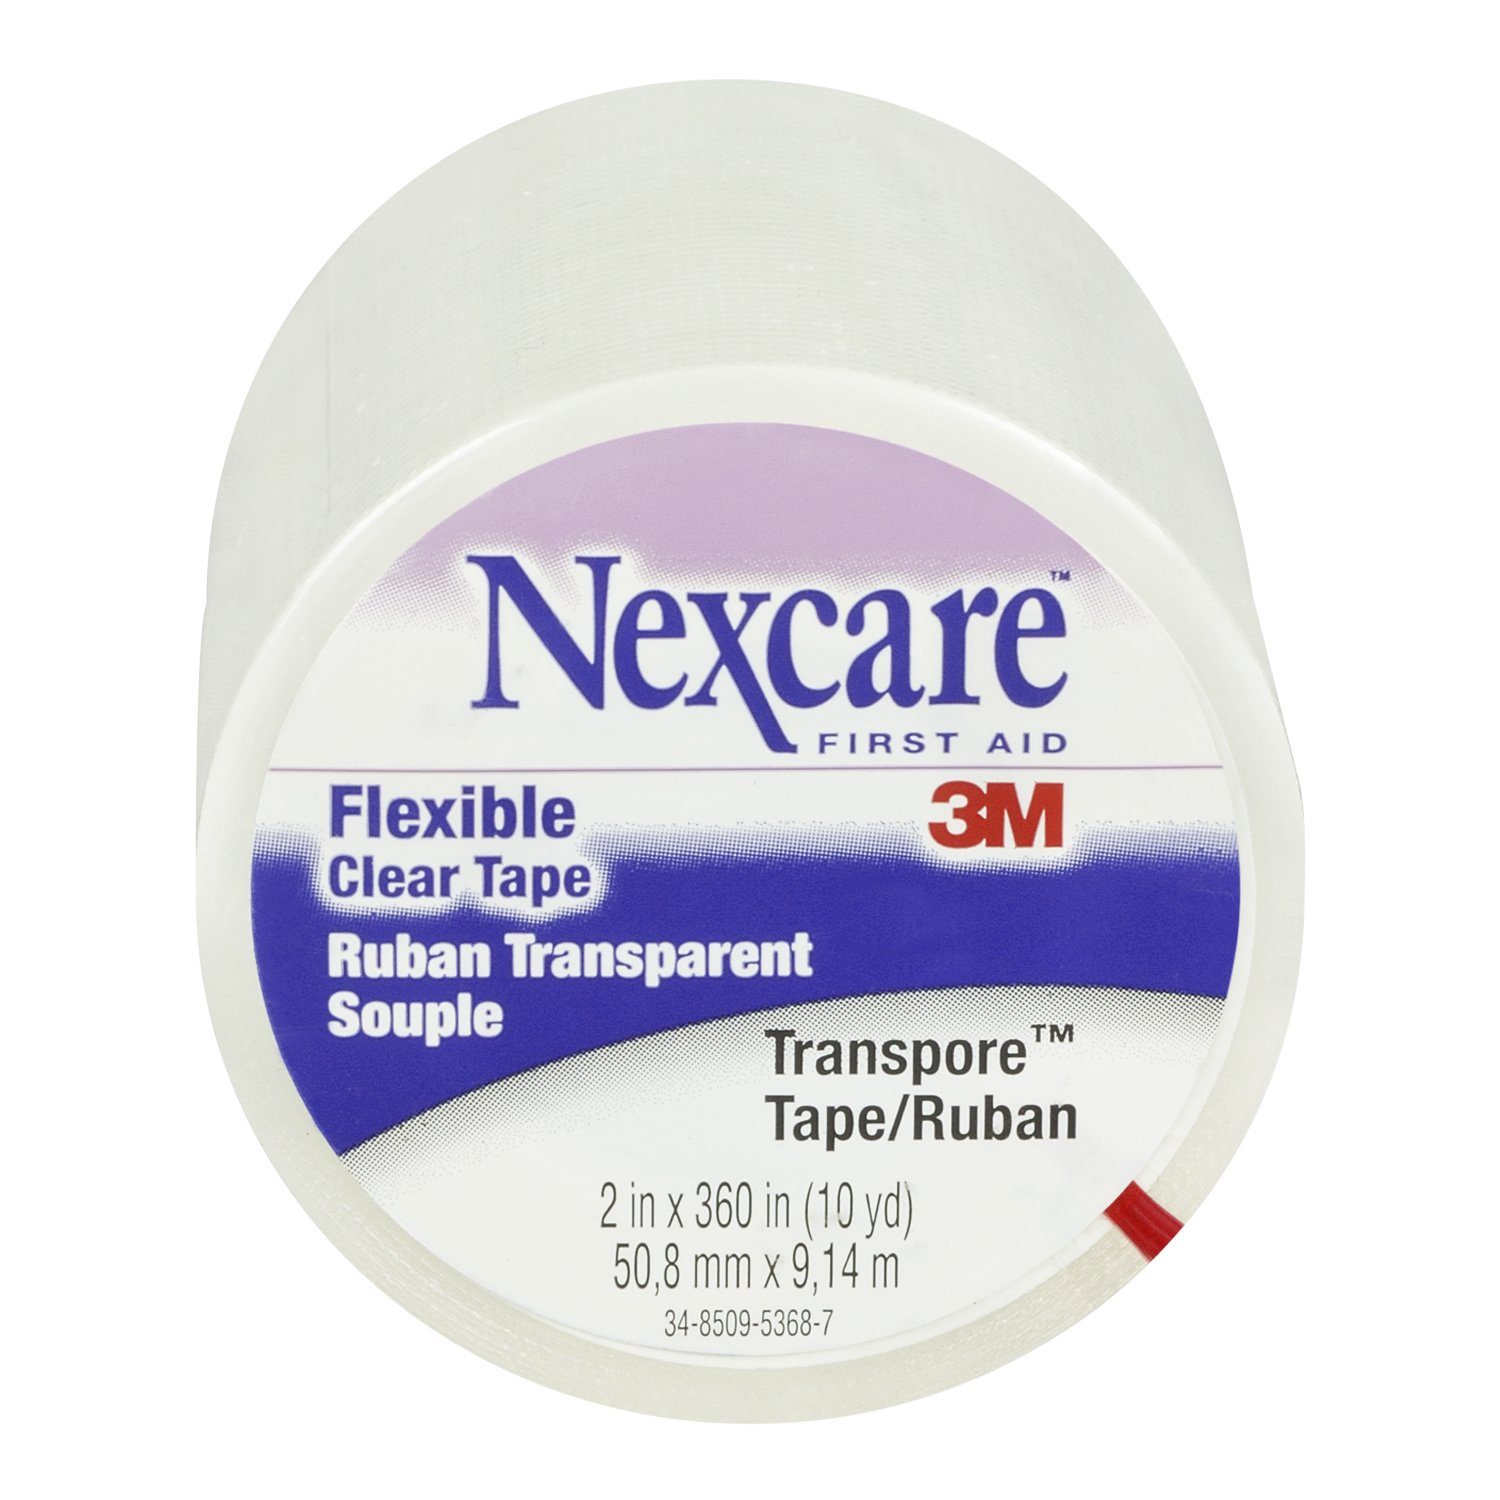 Nexcare Transpore Clear 2-Inch Wide First Aid Tape, 10-Yard Roll (Pack of 4) by Nexcare